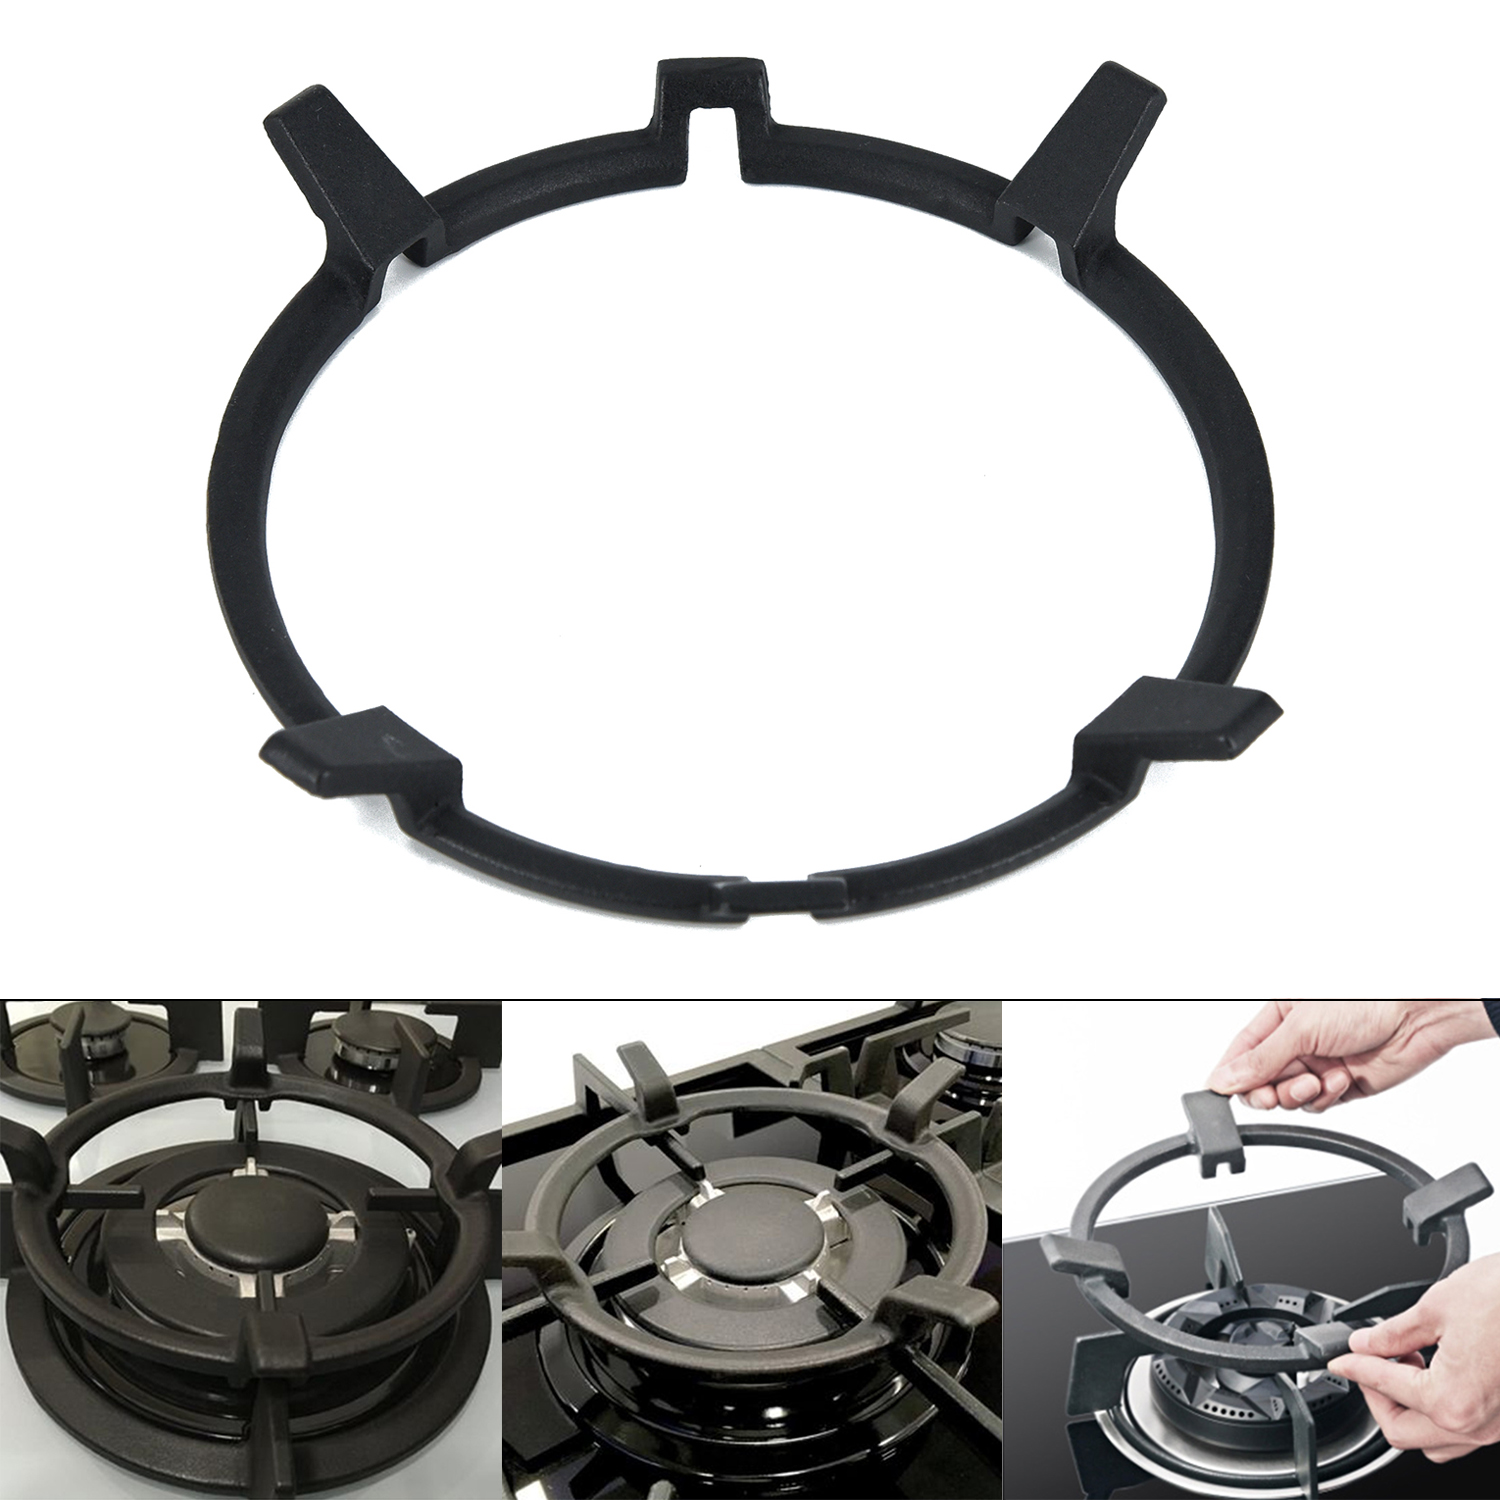 Universal Compact Cast Iron Wok Pan Support Rack Stand For Burners Gas Hobs Cookers Black Kitchecn Wok Rack Fit Most Hobs hots